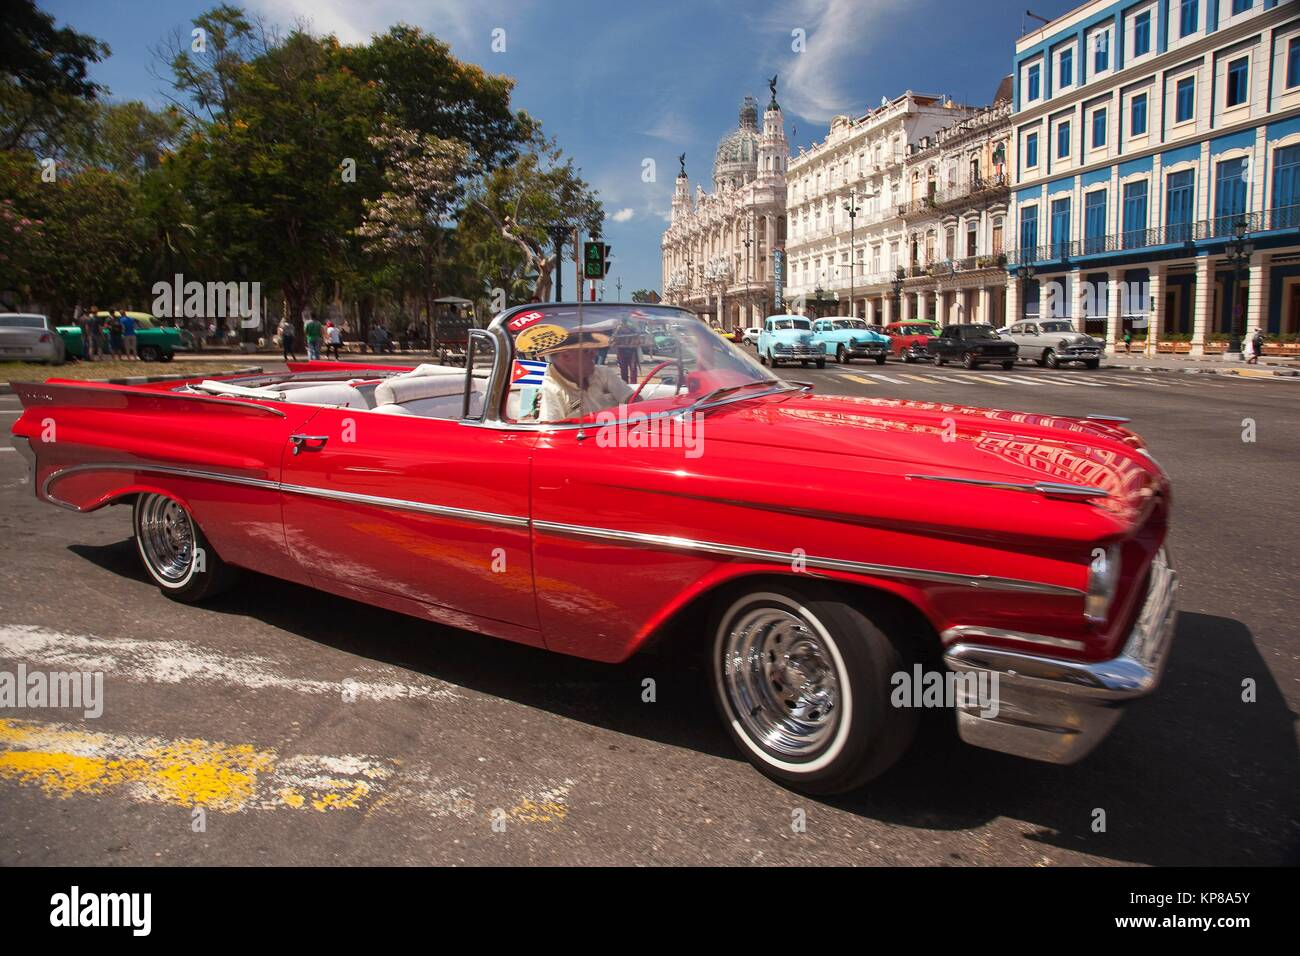 Vintage American car used as taxi in Central Havana with Hotel Telegrafo, Hotel Inglaterra, Gran Teatro and Capitolio - Stock Image